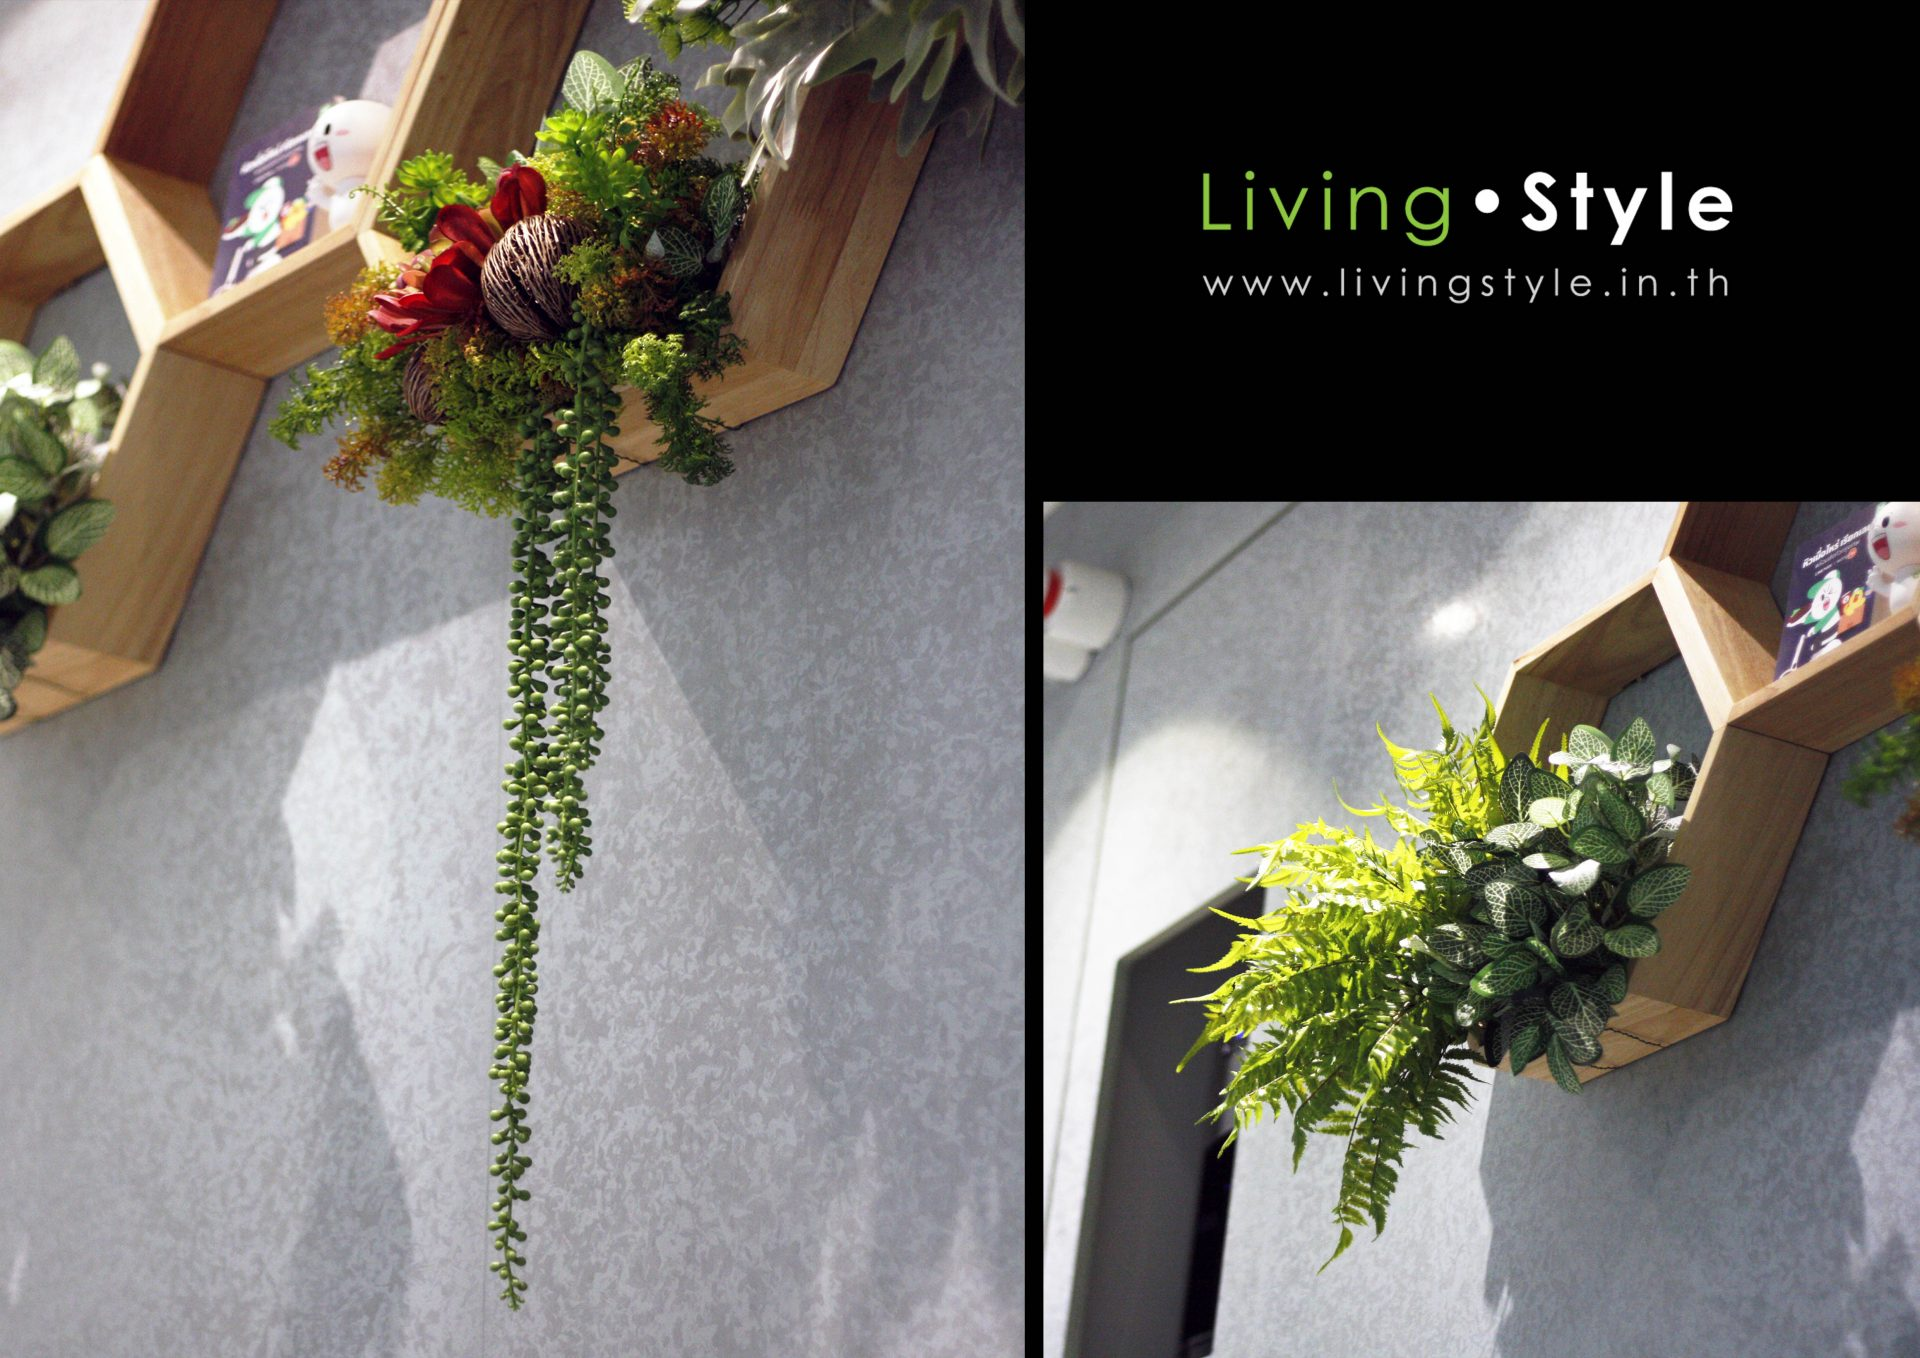 Livingstyle 018-1 catalog